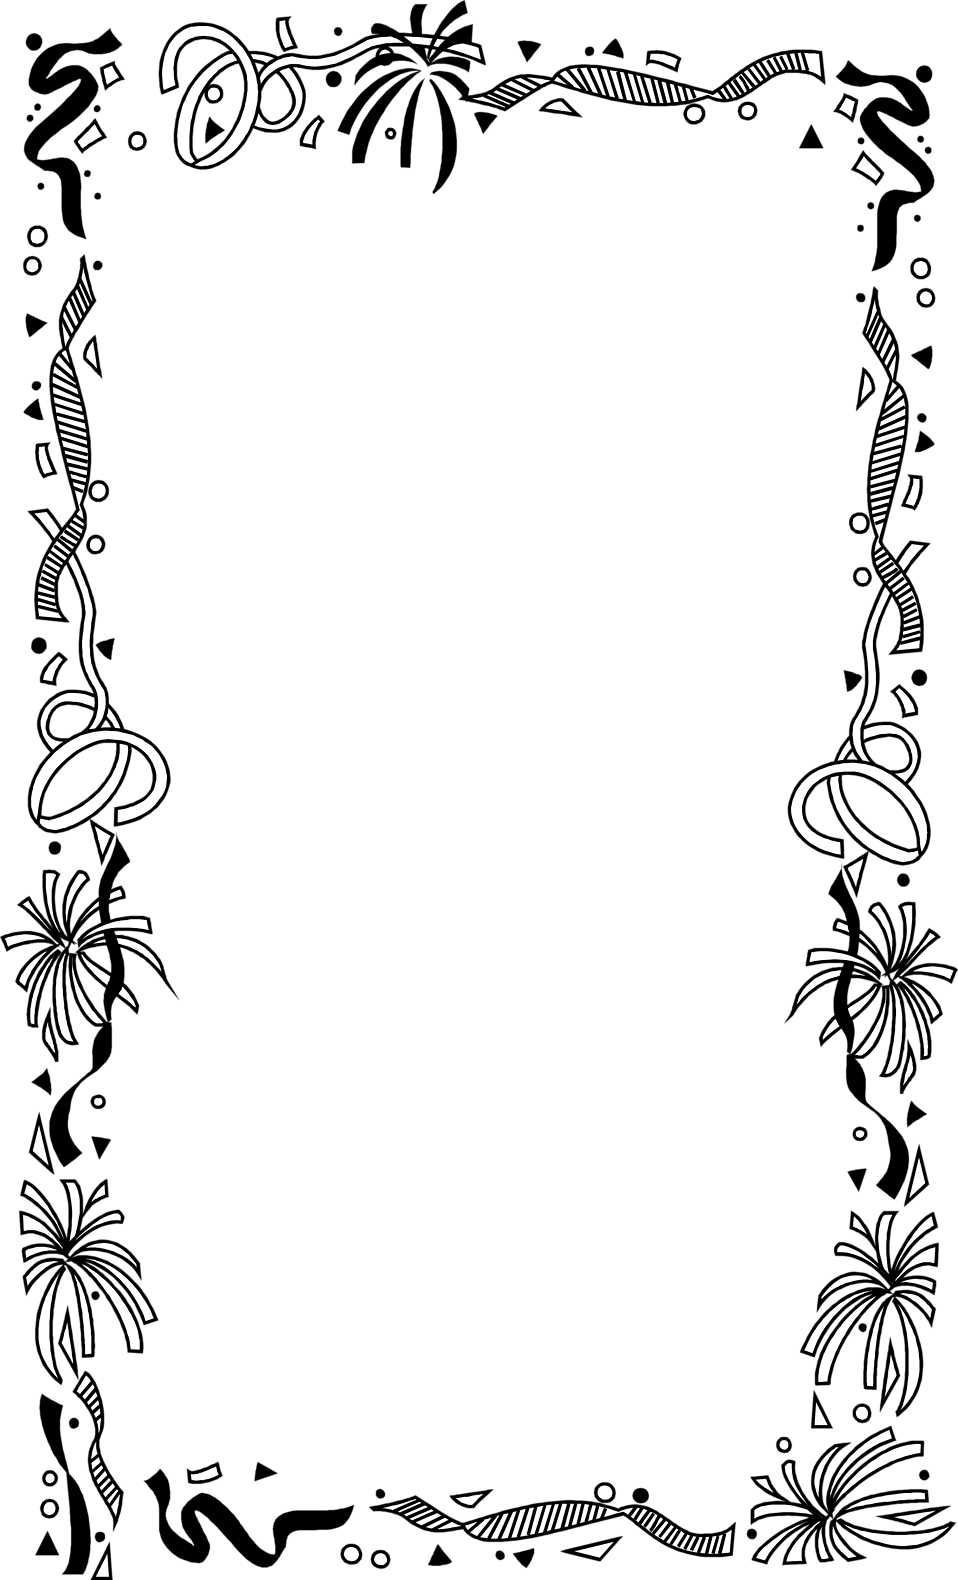 Frames And Borders Black And White Free Download Best